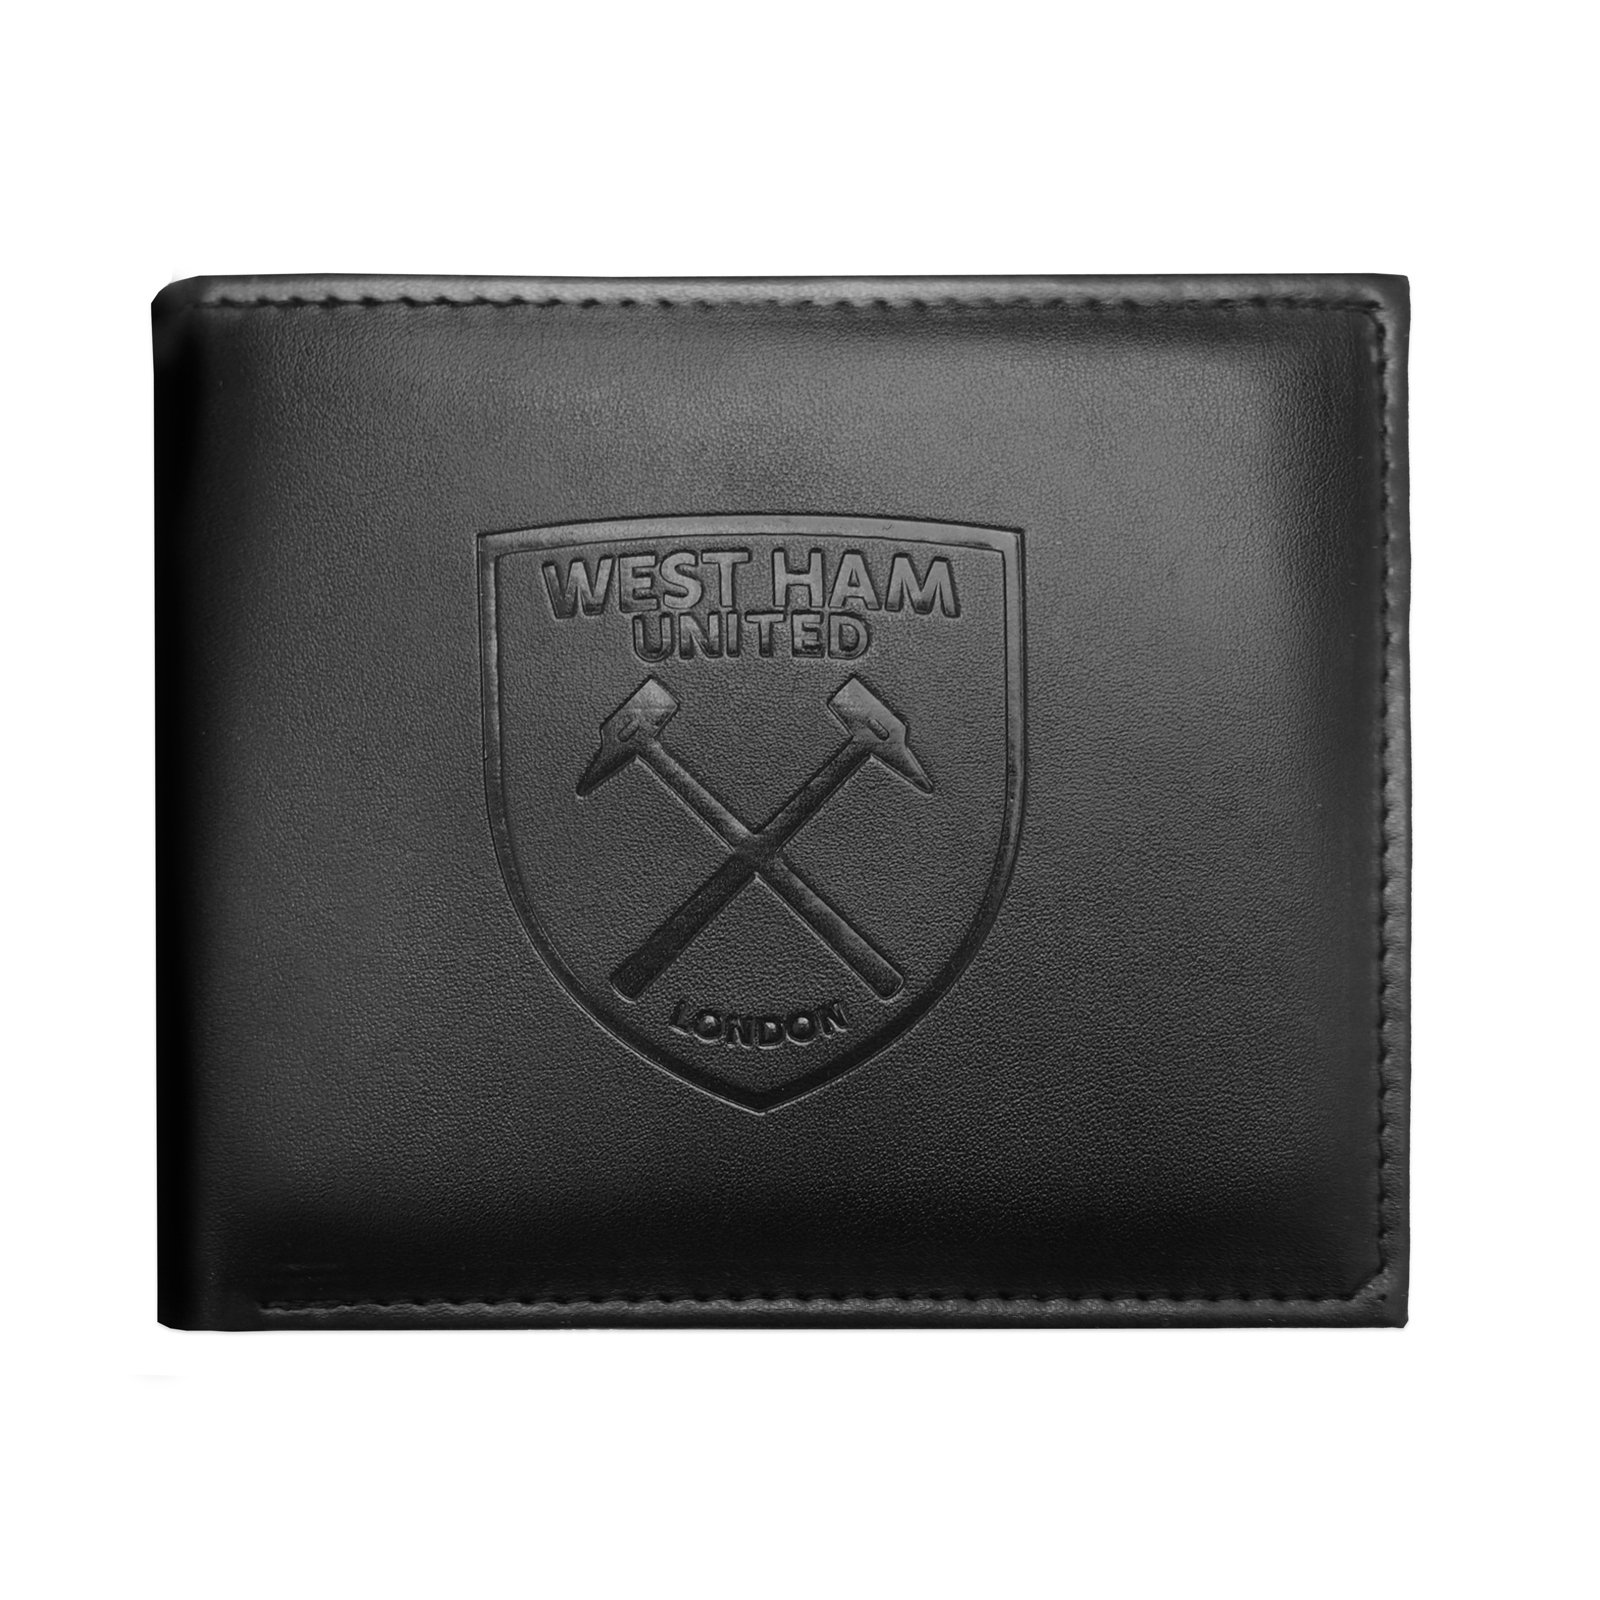 842ed82c45c West Ham United FC Official Football Gift Embossed Crest Money Wallet  product image